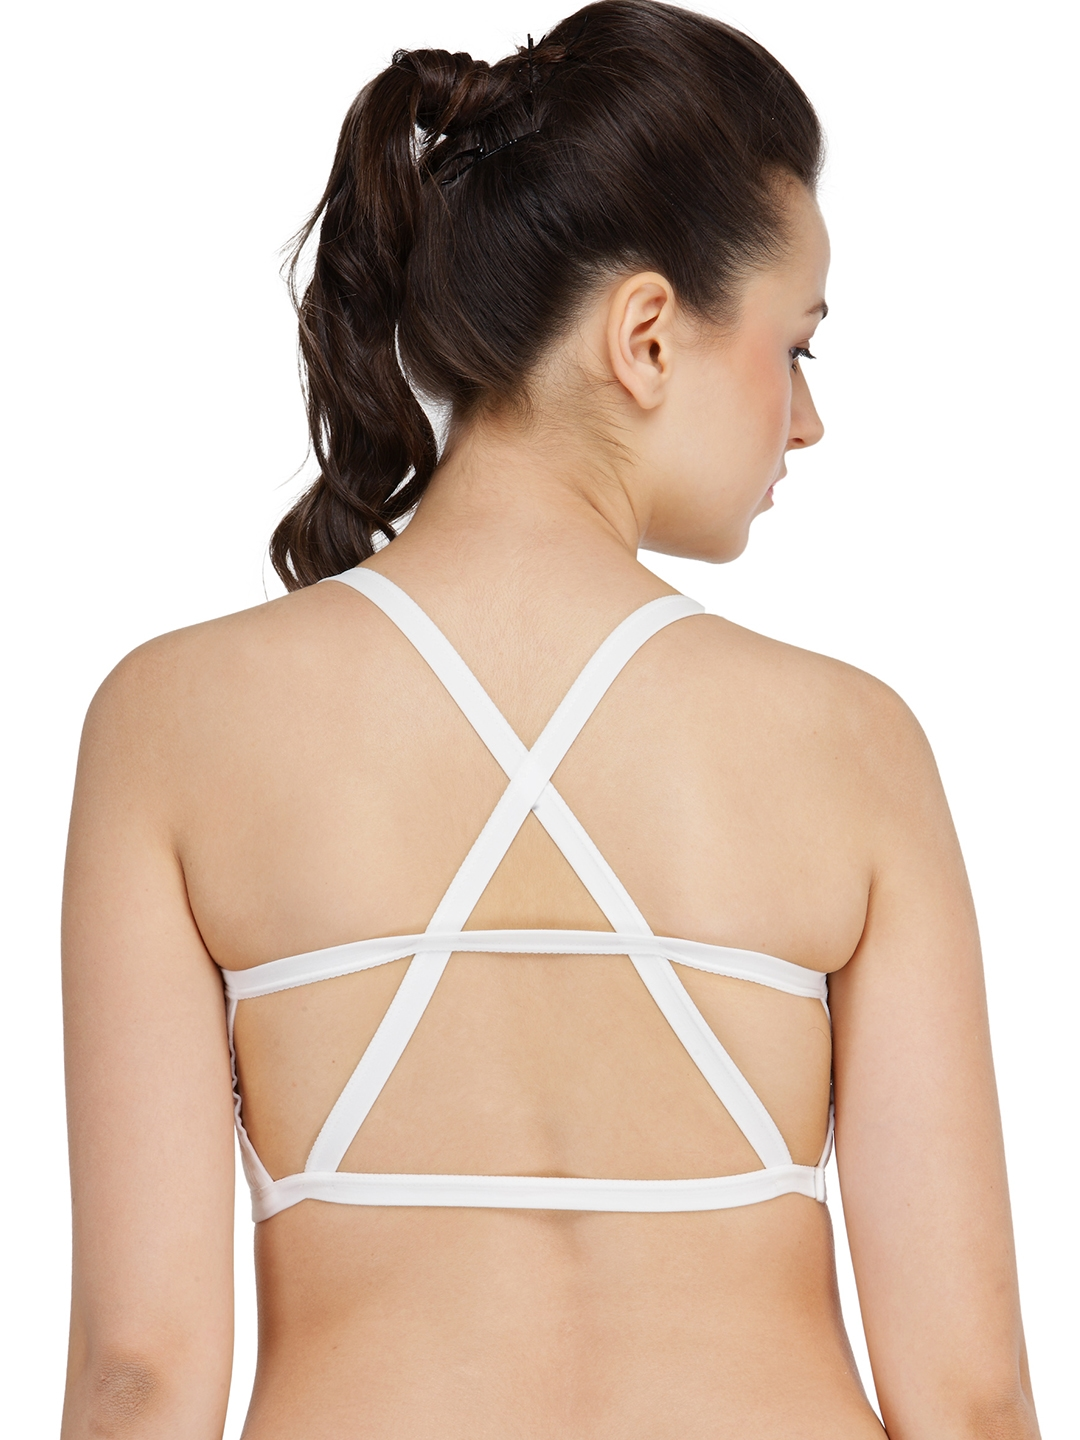 24341ed13a86d Buy N Gal White Non Wired Full Coverage Lightly Padded Bralette ...